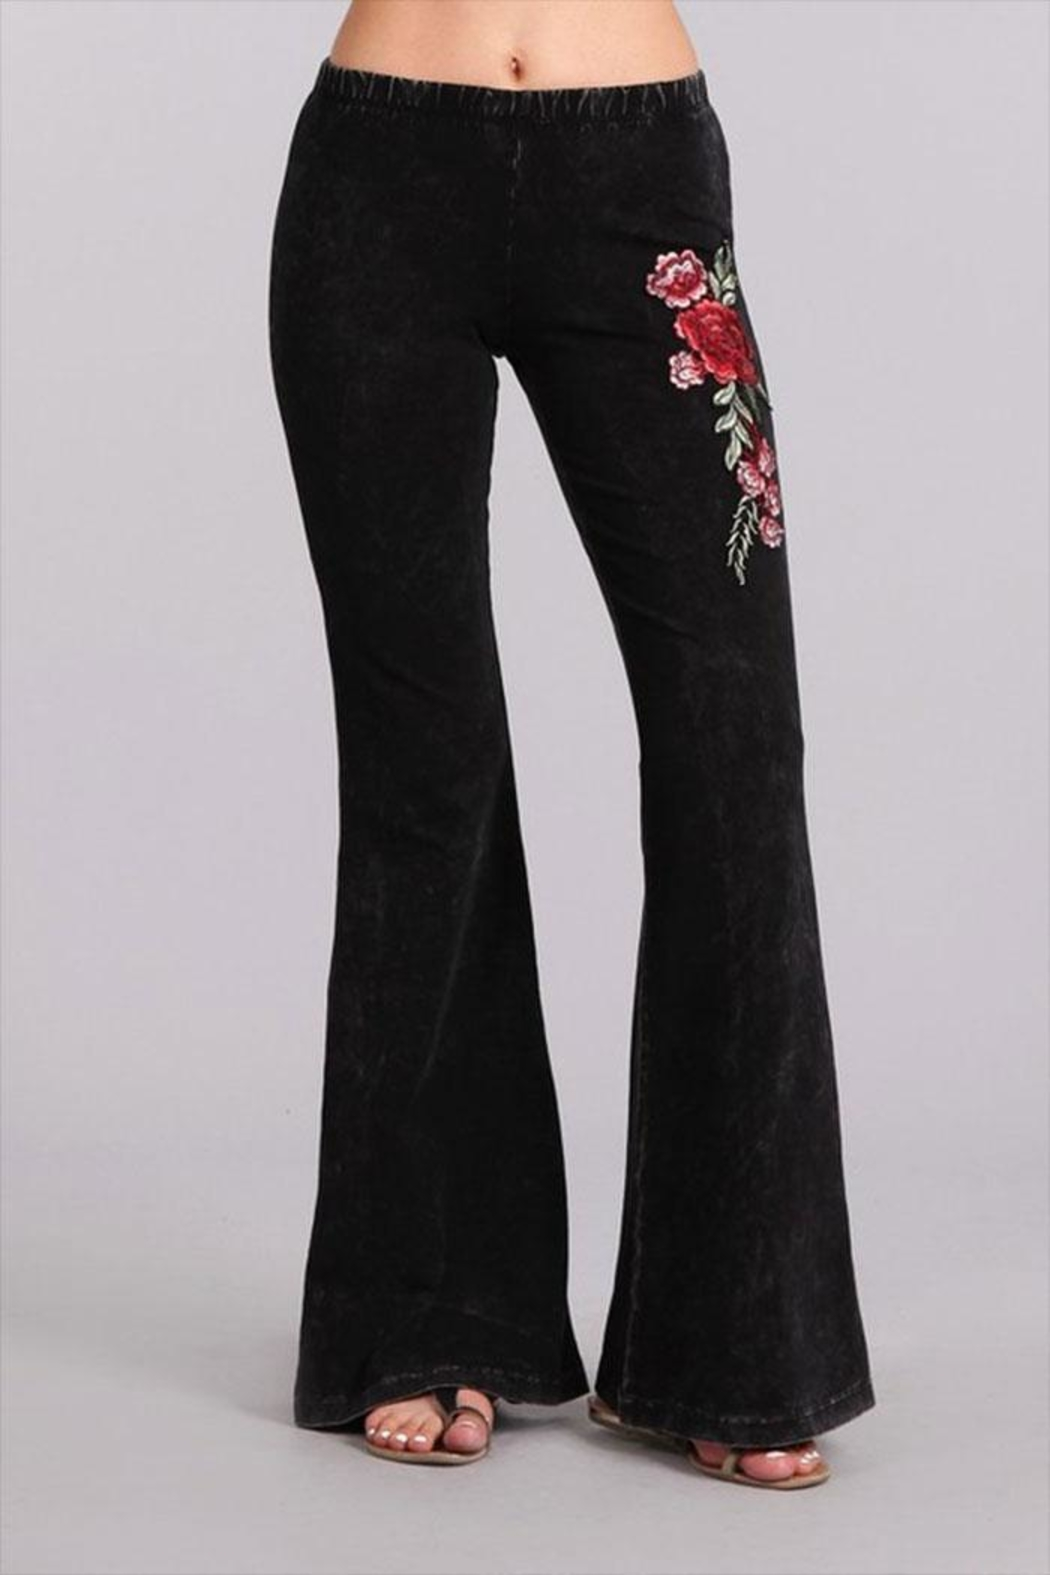 Chatoyant embroidered bell bottoms from california by